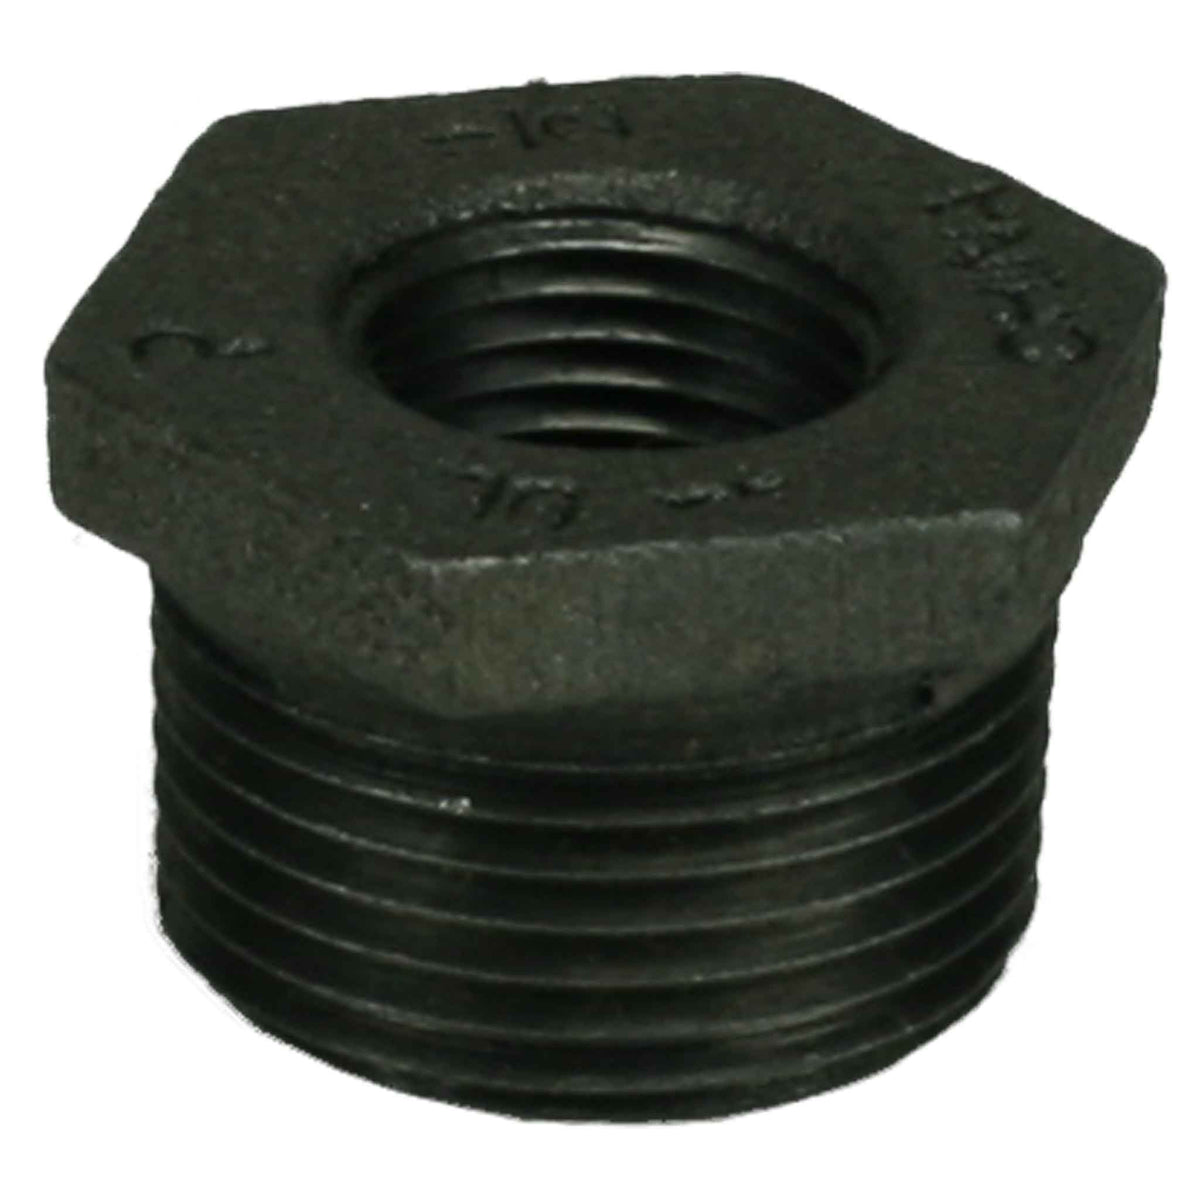 "1"" x 1/2"" Black Iron Bushing"